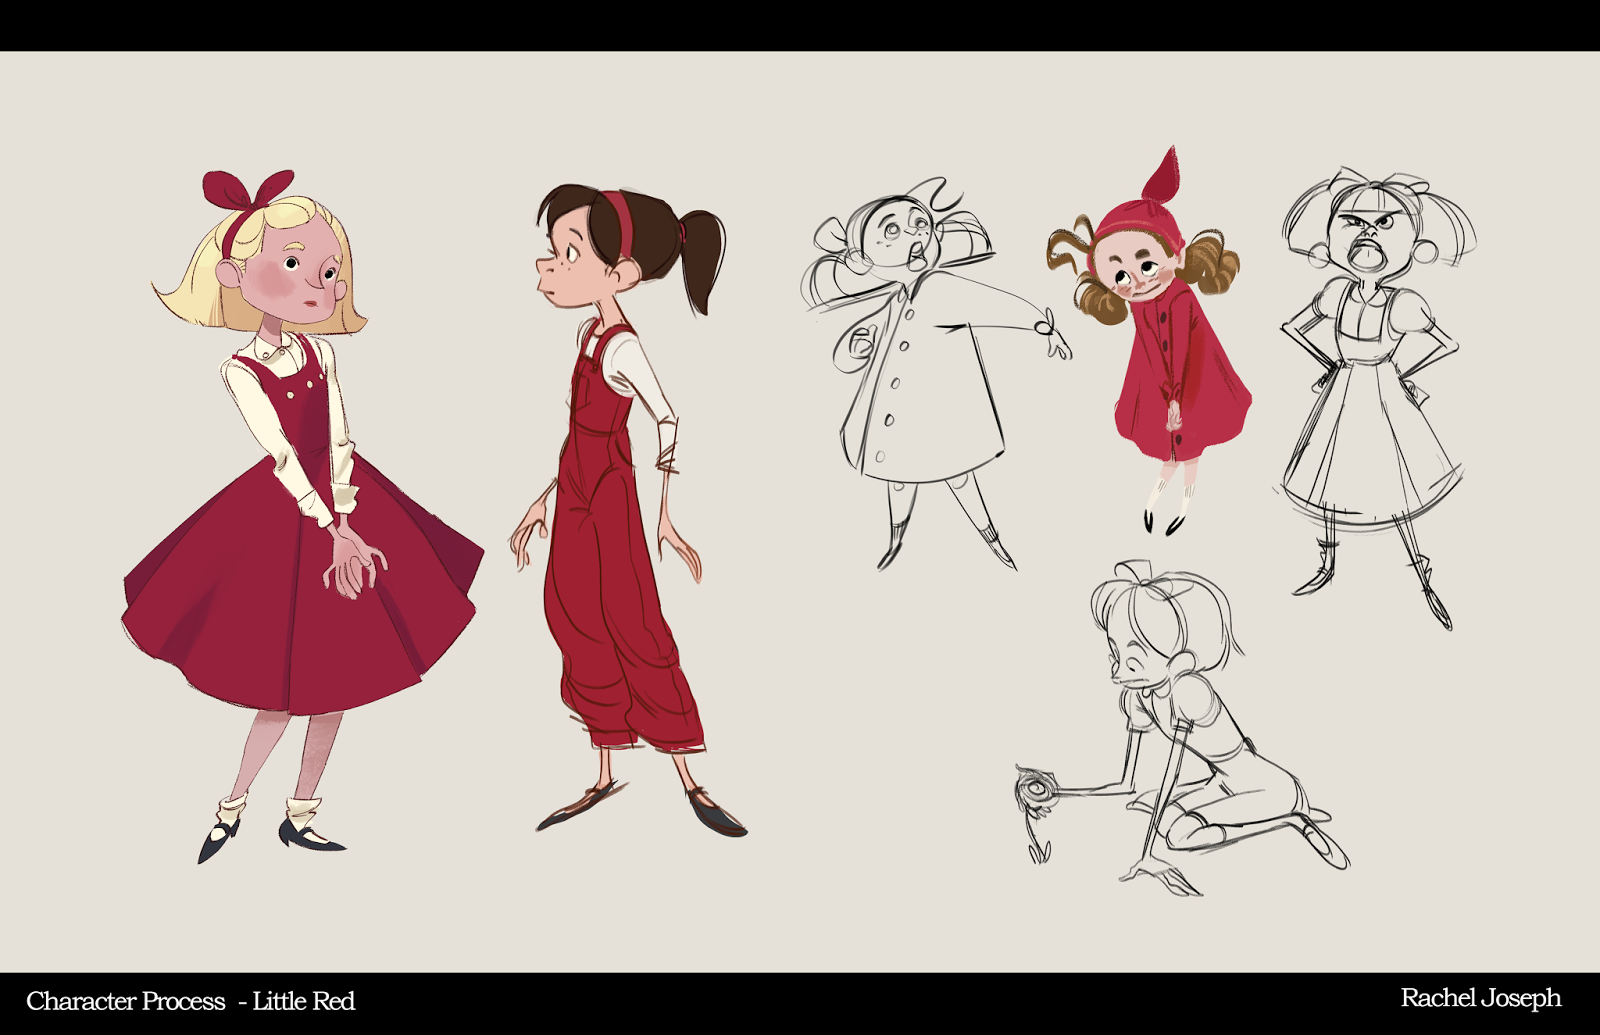 Character Design Visual Development Portfolio : Character design visual development portfolio